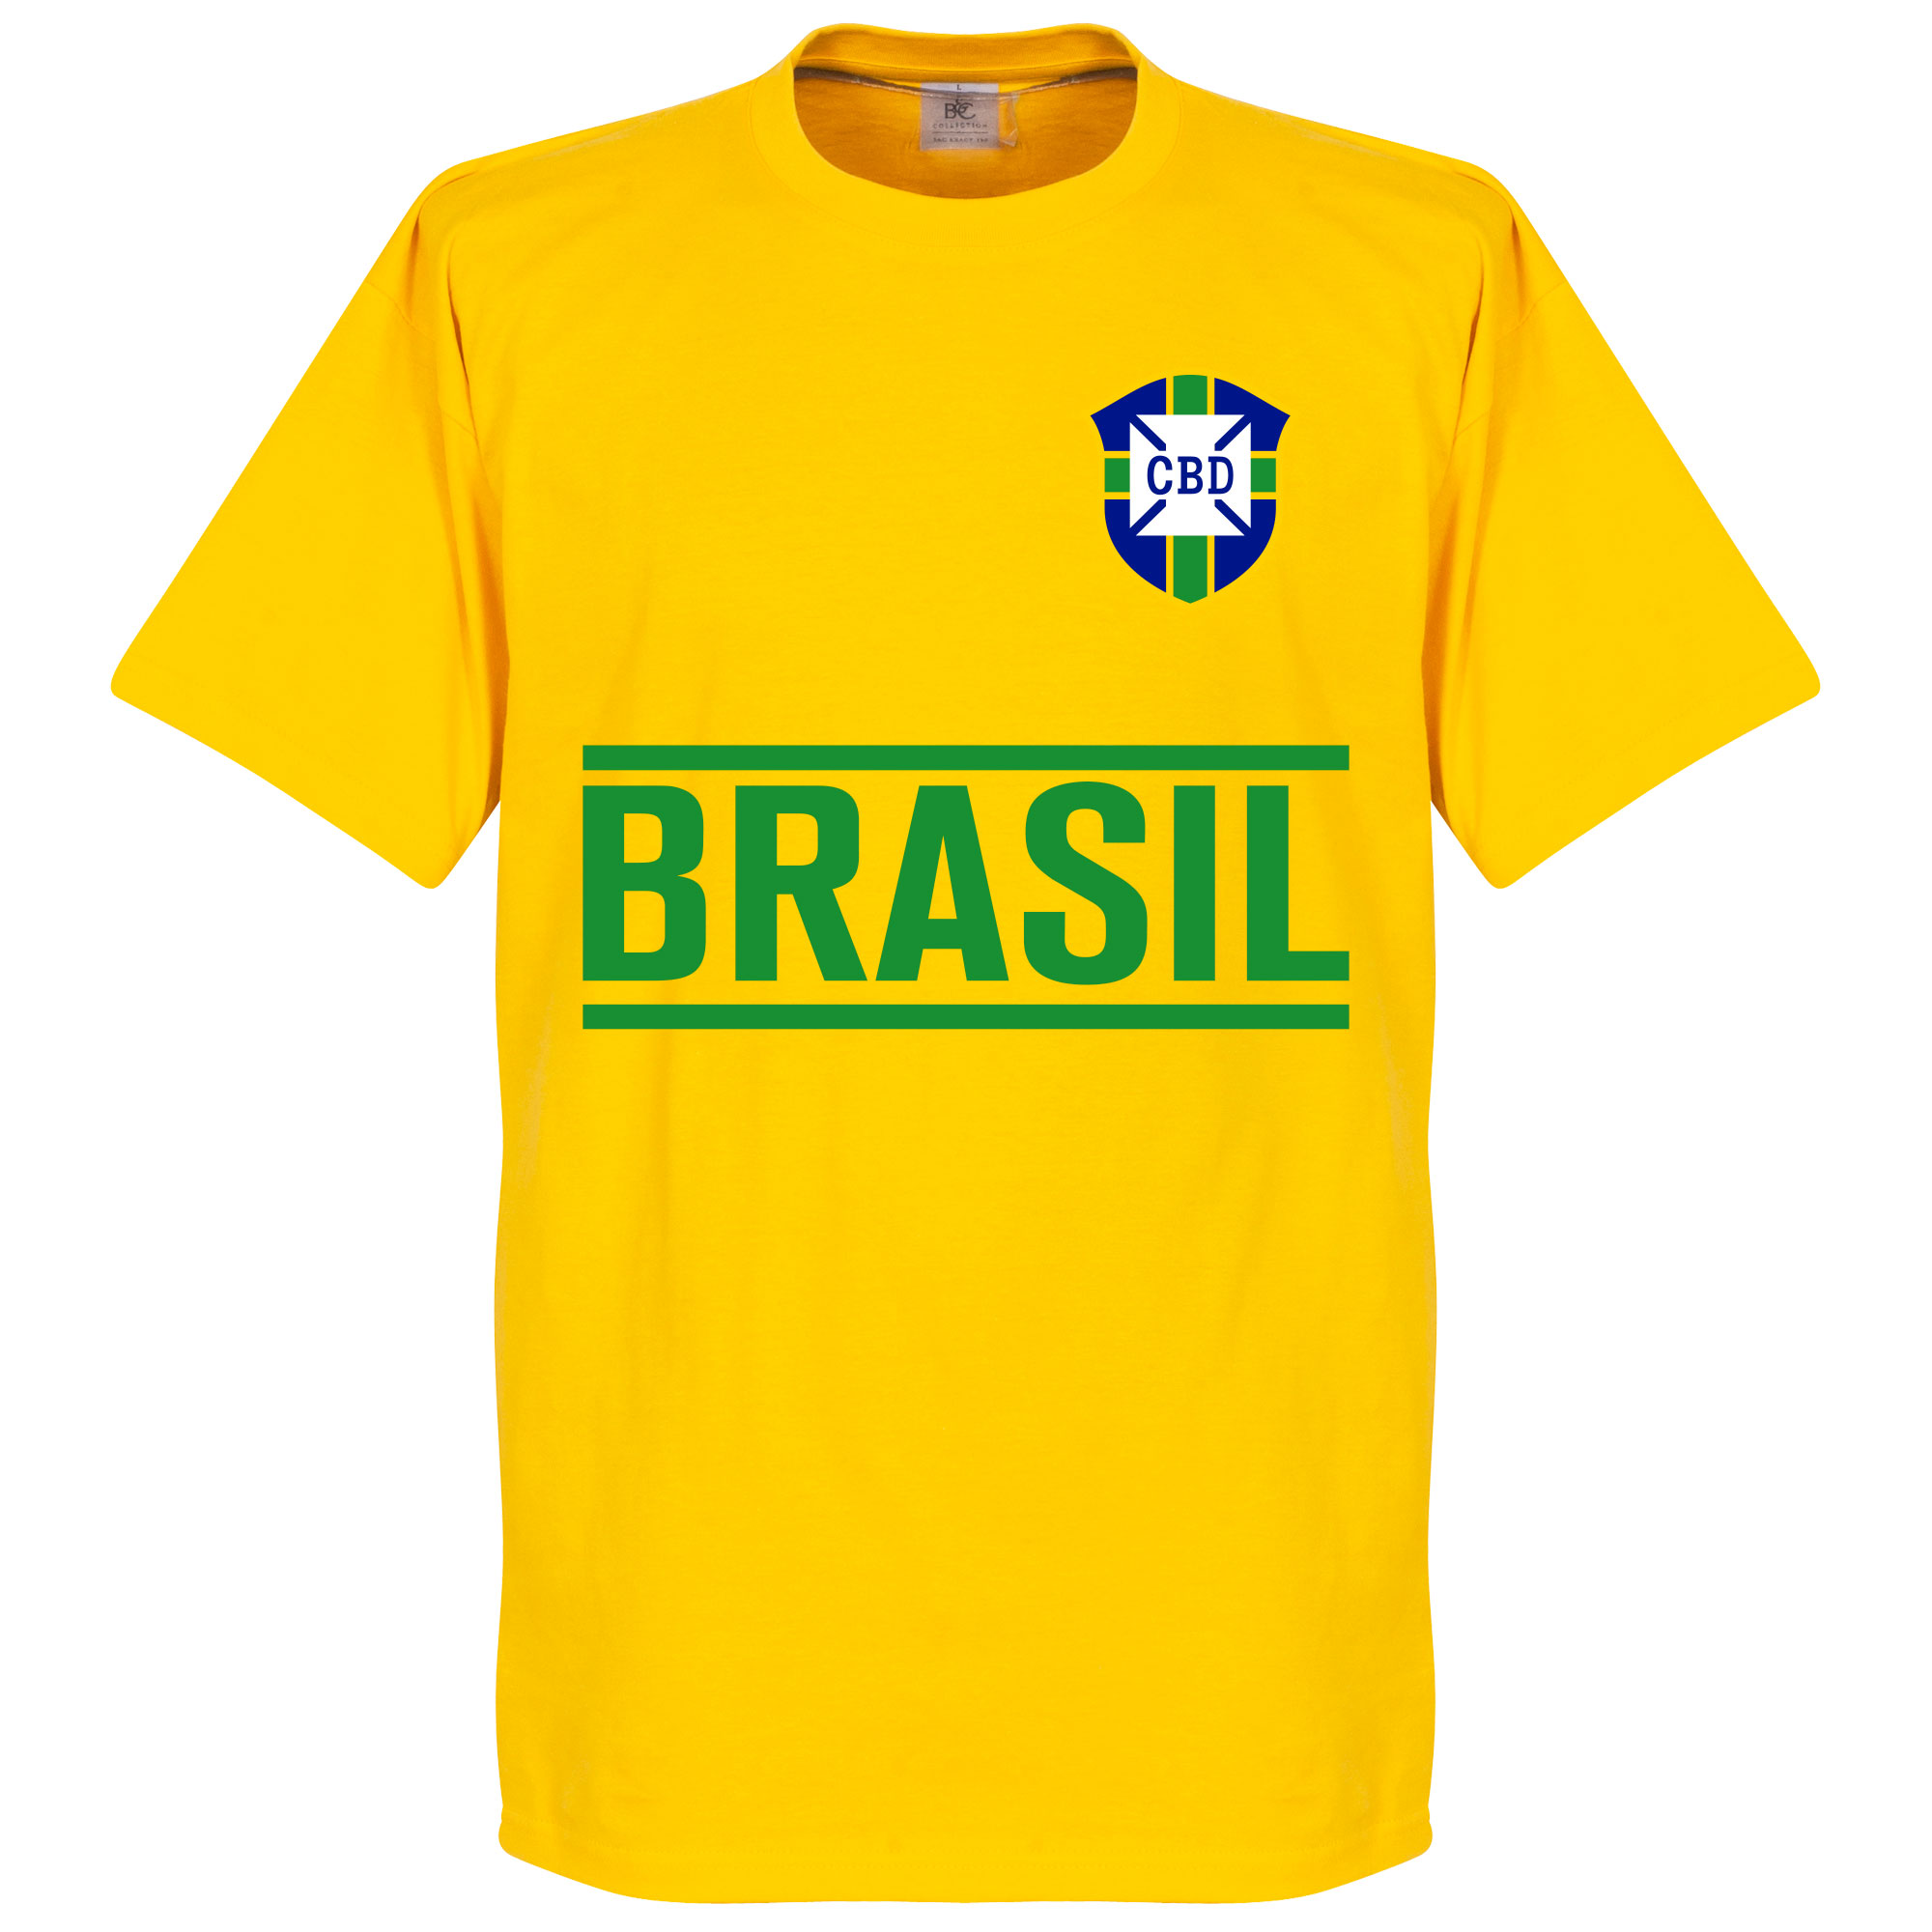 Brazil Team Tee - Yellow - XS